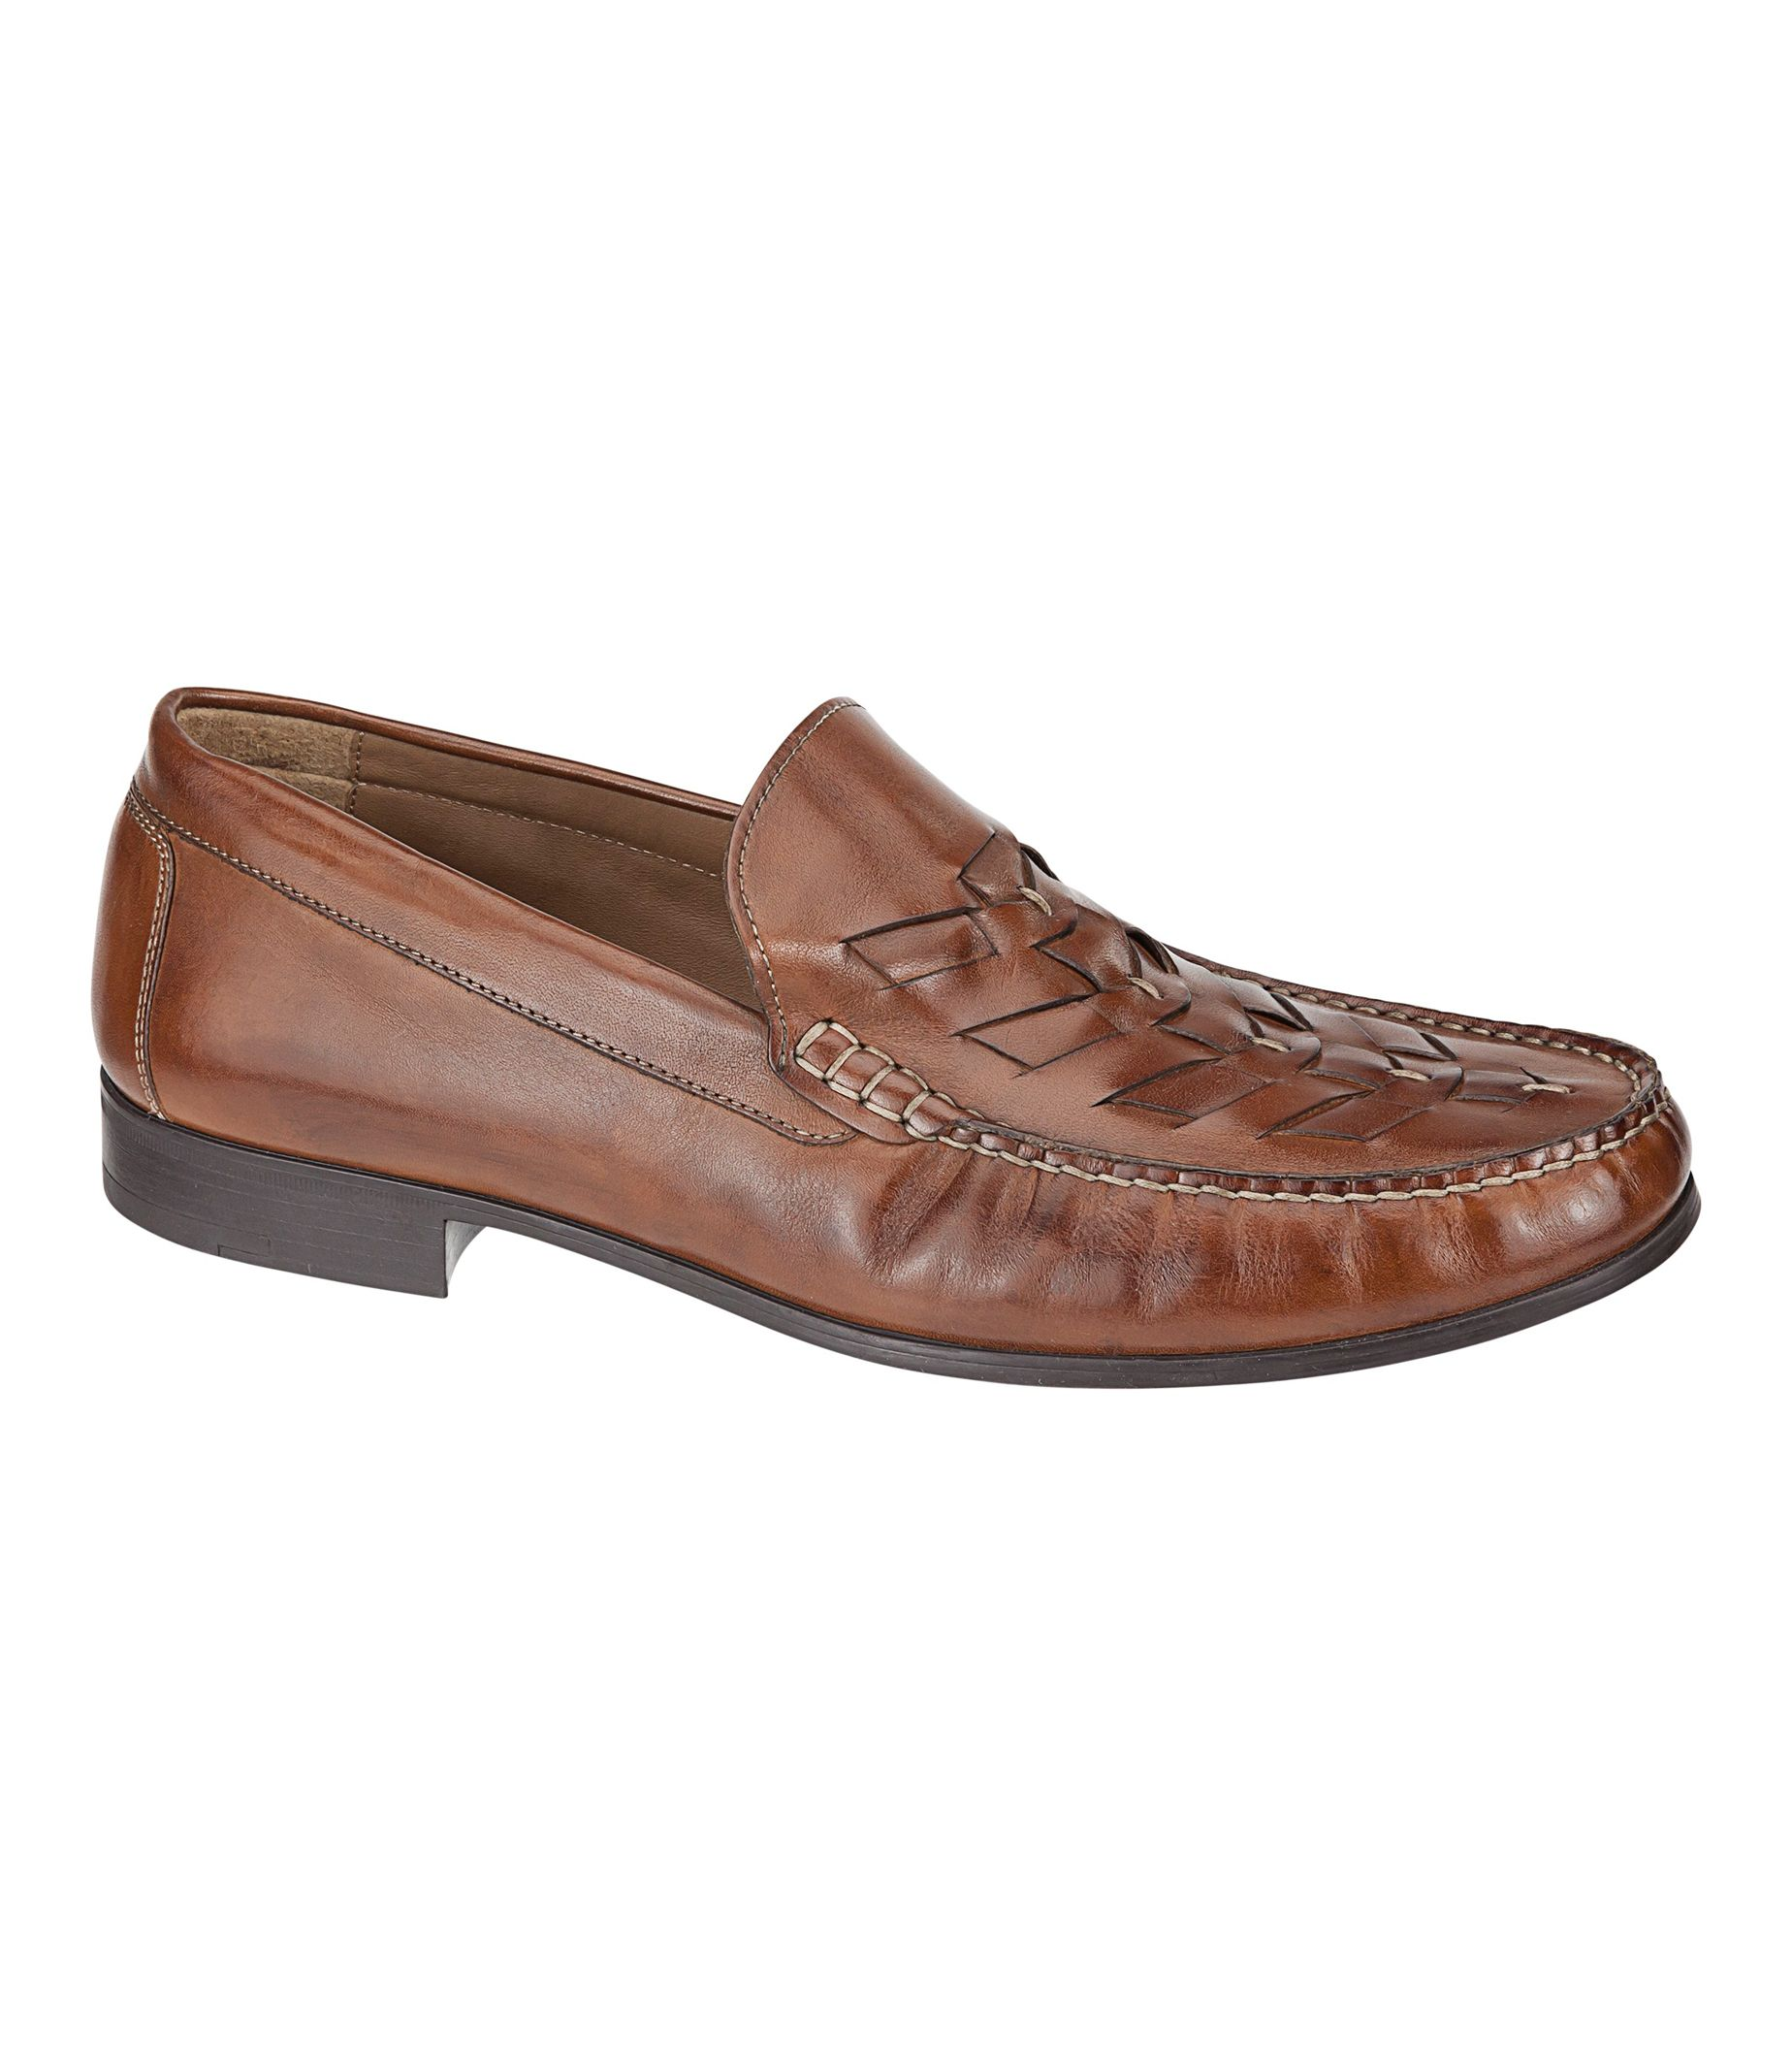 Cresswell Woven Venetian Shoe by Johnston & Murphy